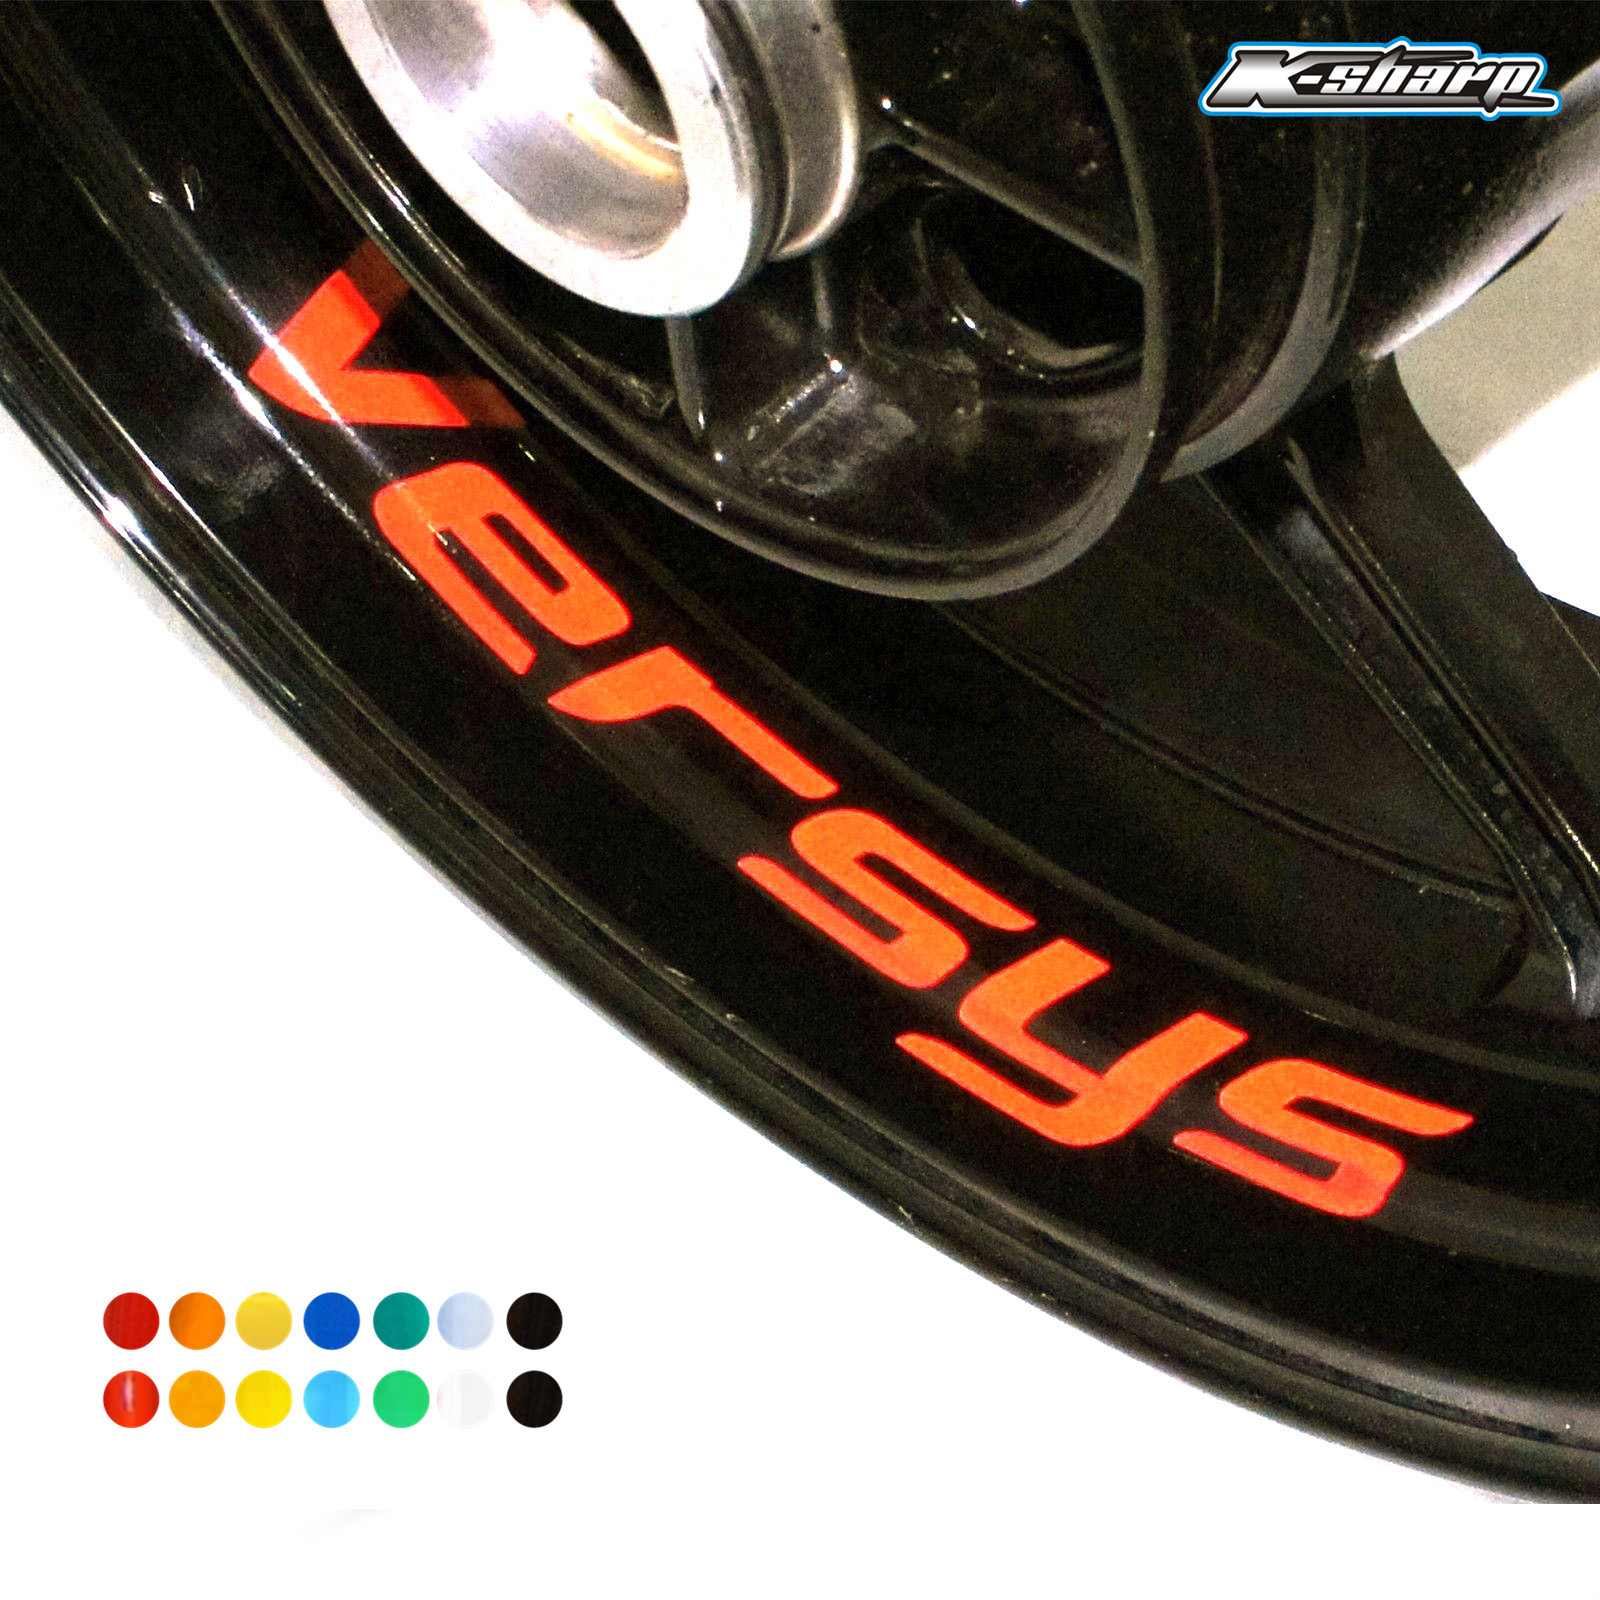 8 X Custon Inner Rim Decals Wheel Reflective Stickers Stripes FIT KAWASAKI VERSYS